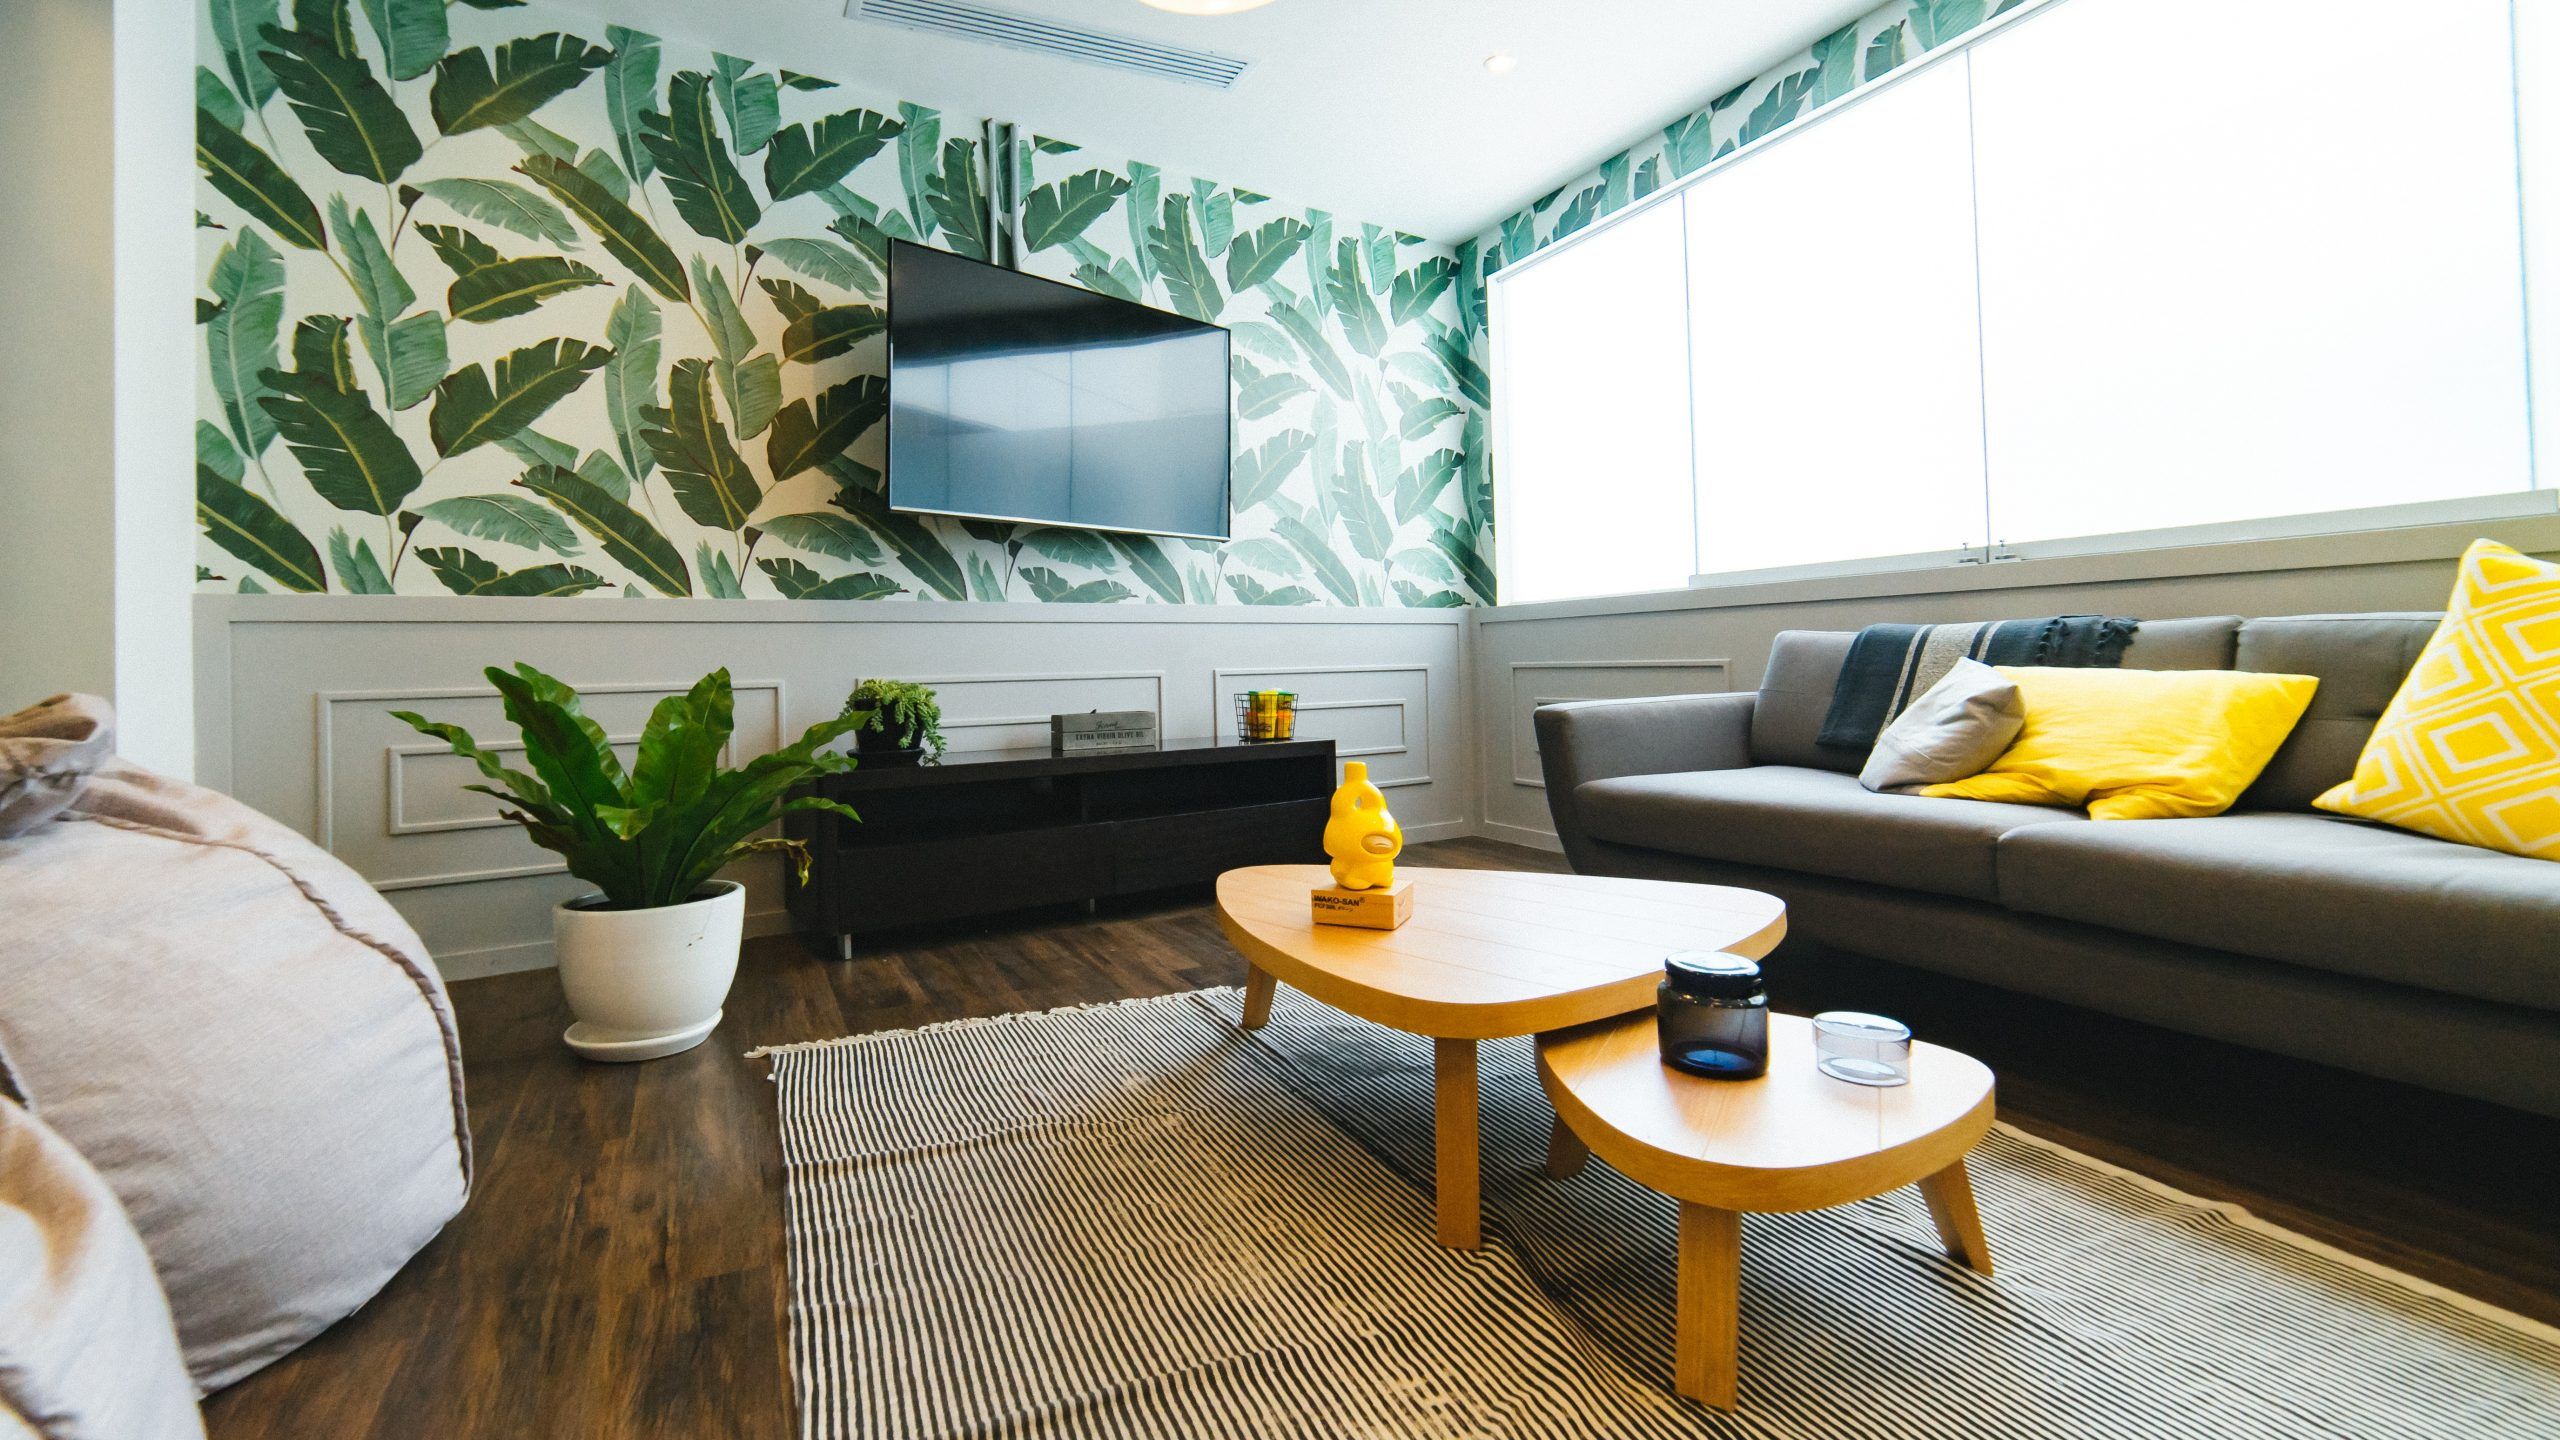 Photo of living room with palm tree wallpaper behind TV.